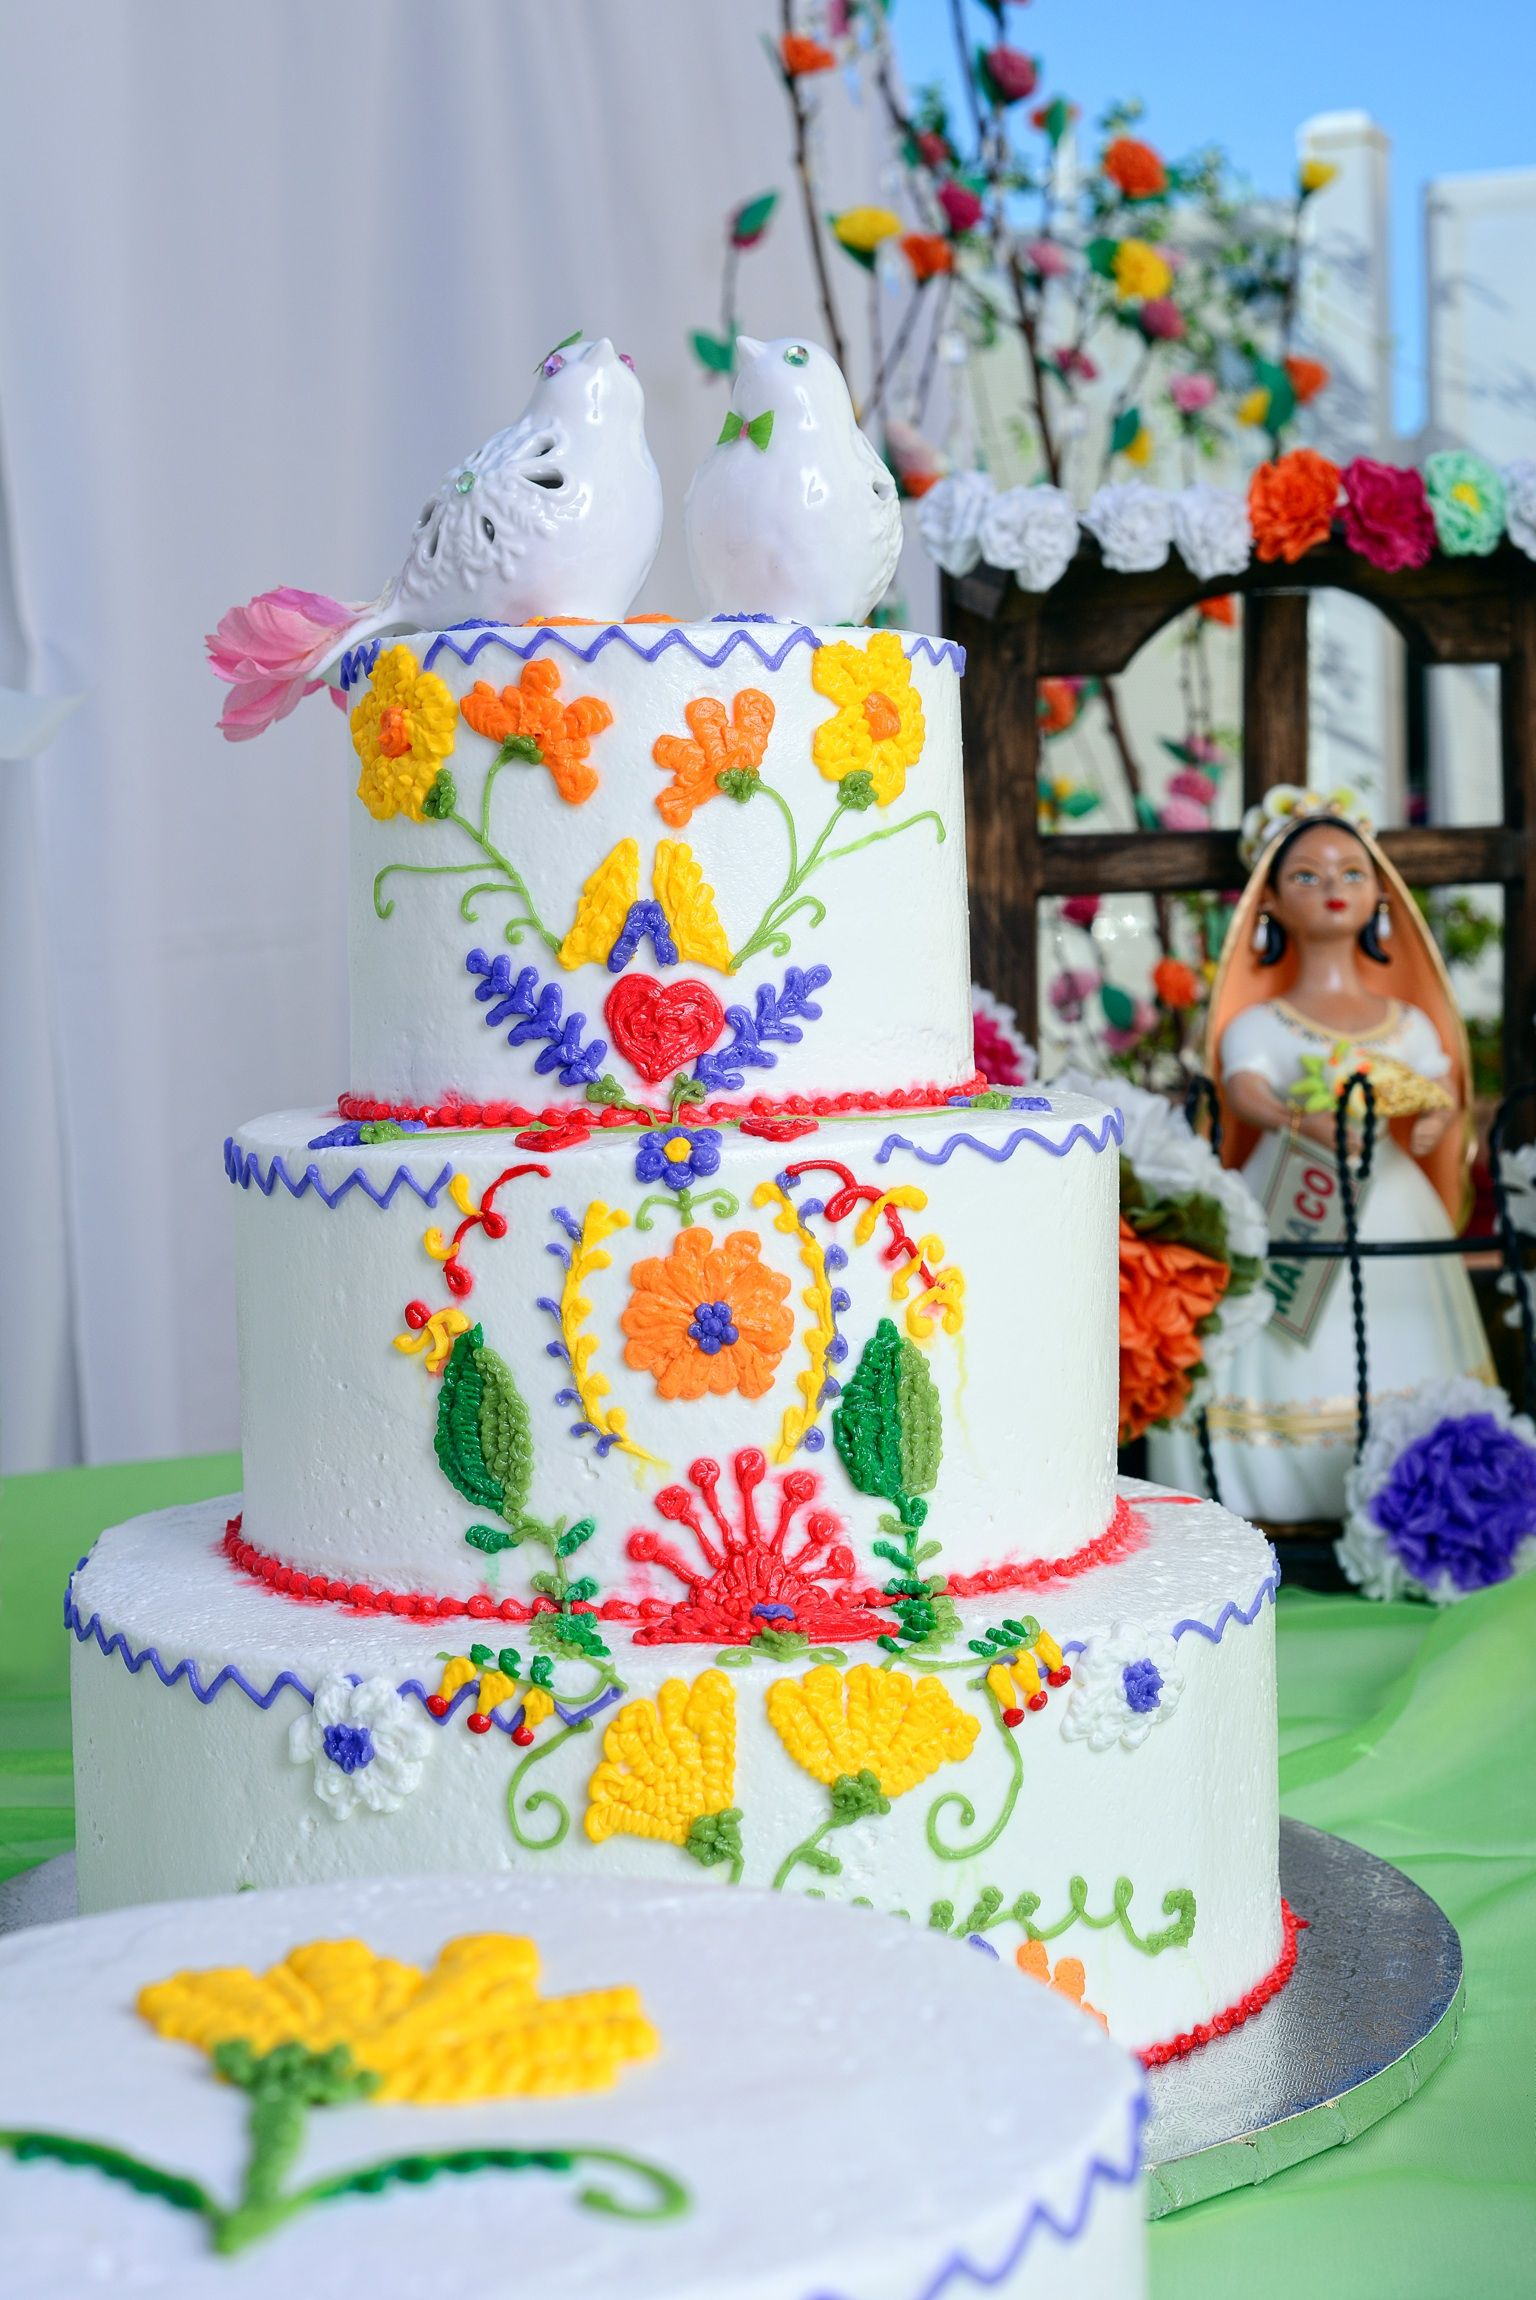 A Hispanic/Catholic wedding cake.